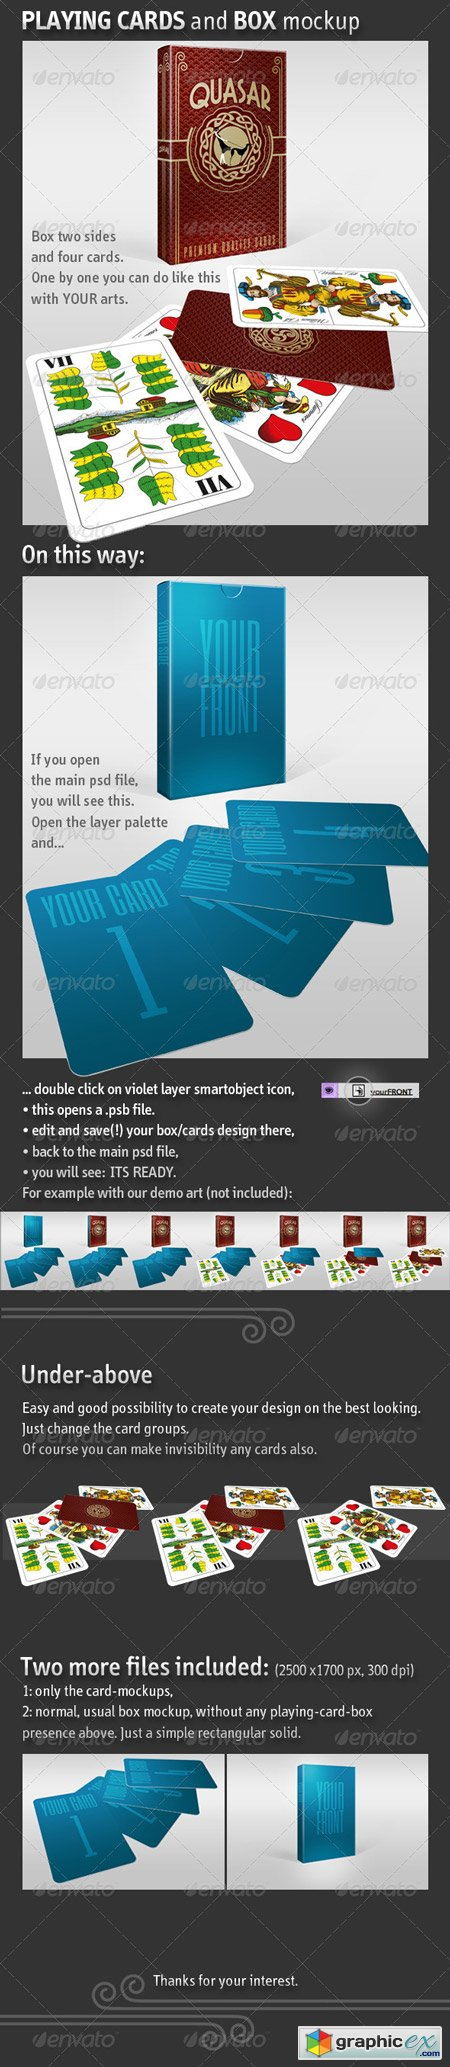 Playing Card - Business Card and Box Mockup 5595309